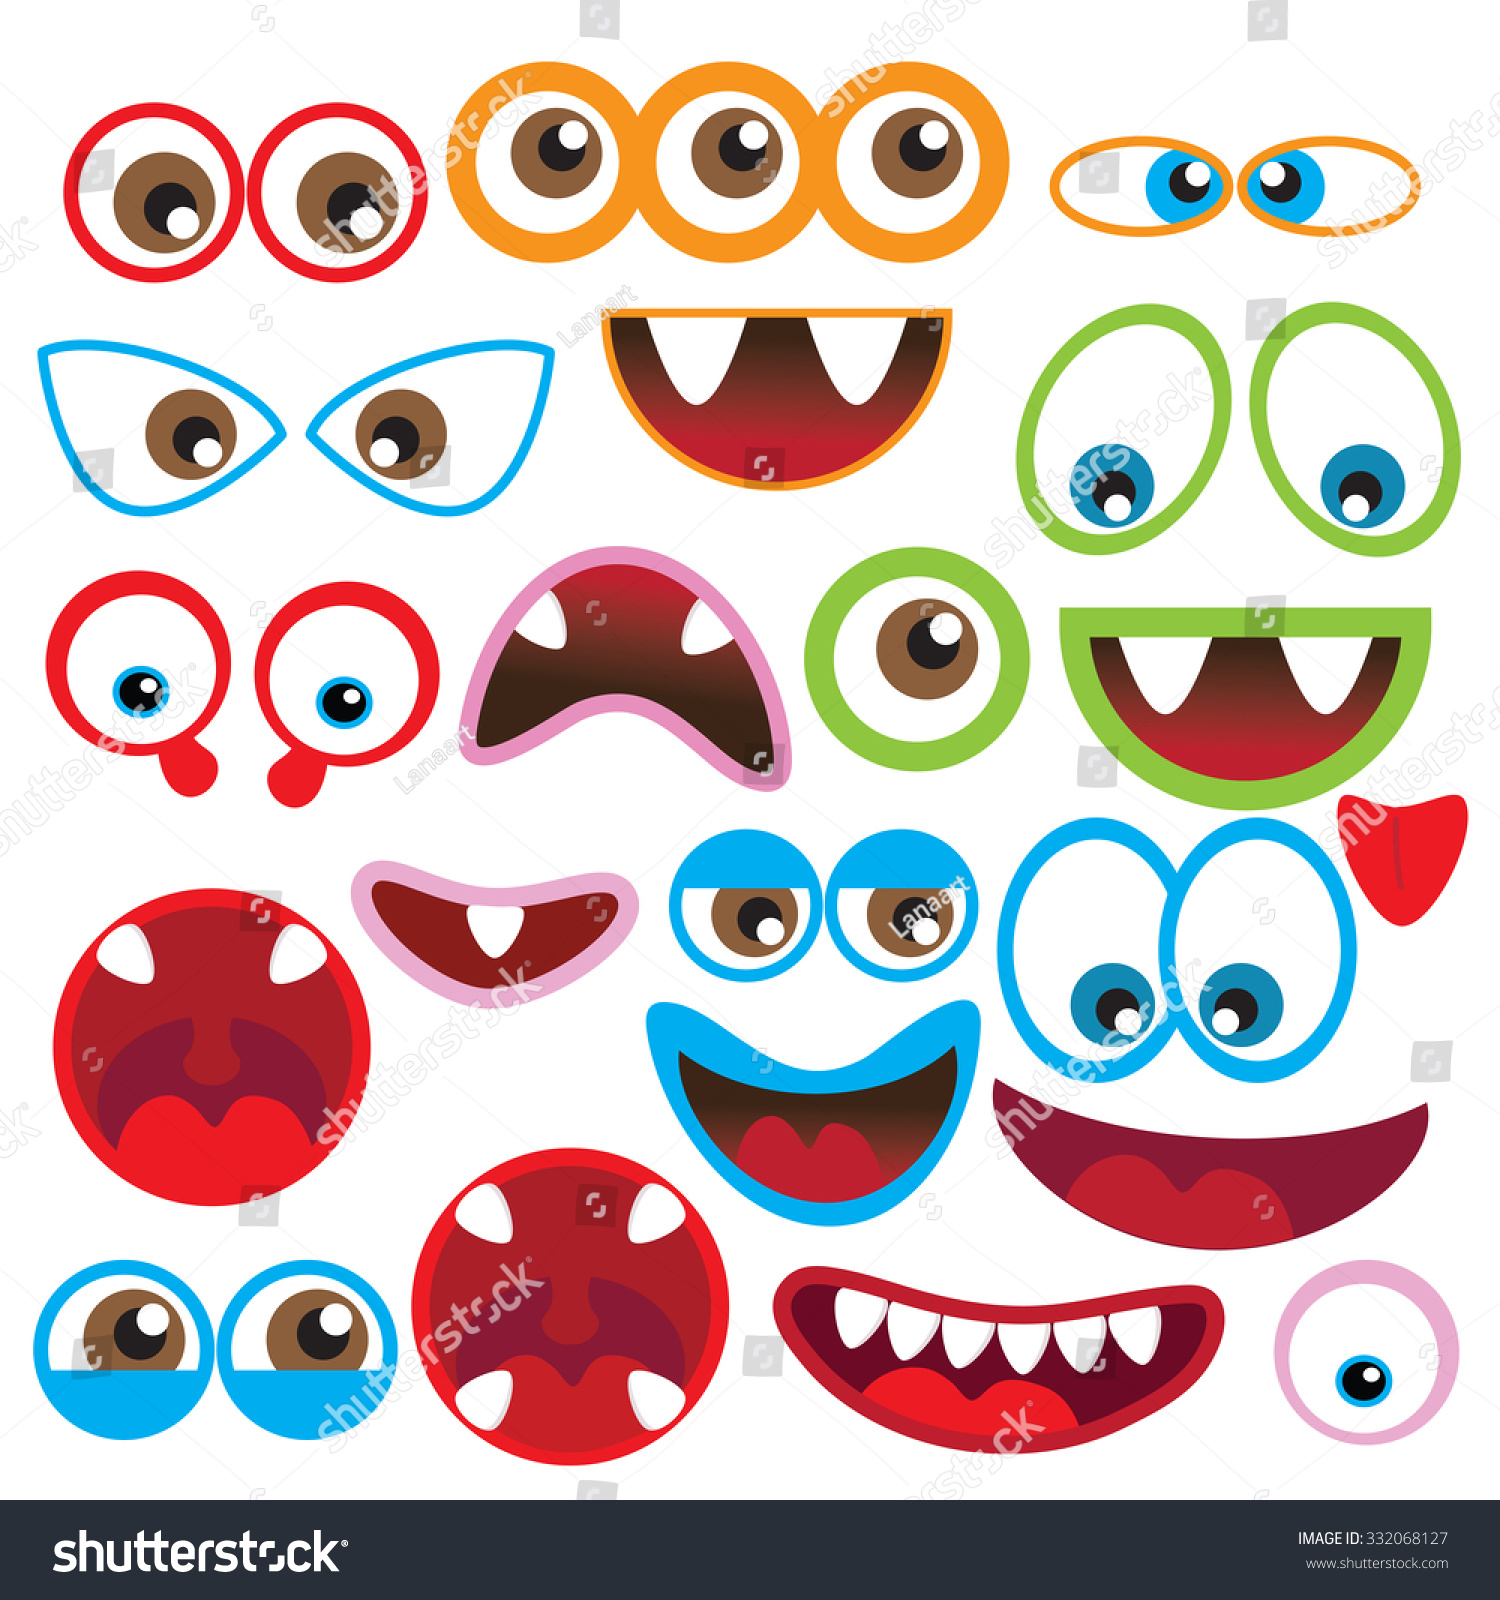 Cute Monsters Eyes Mouth Vector Illustration Stock Vector